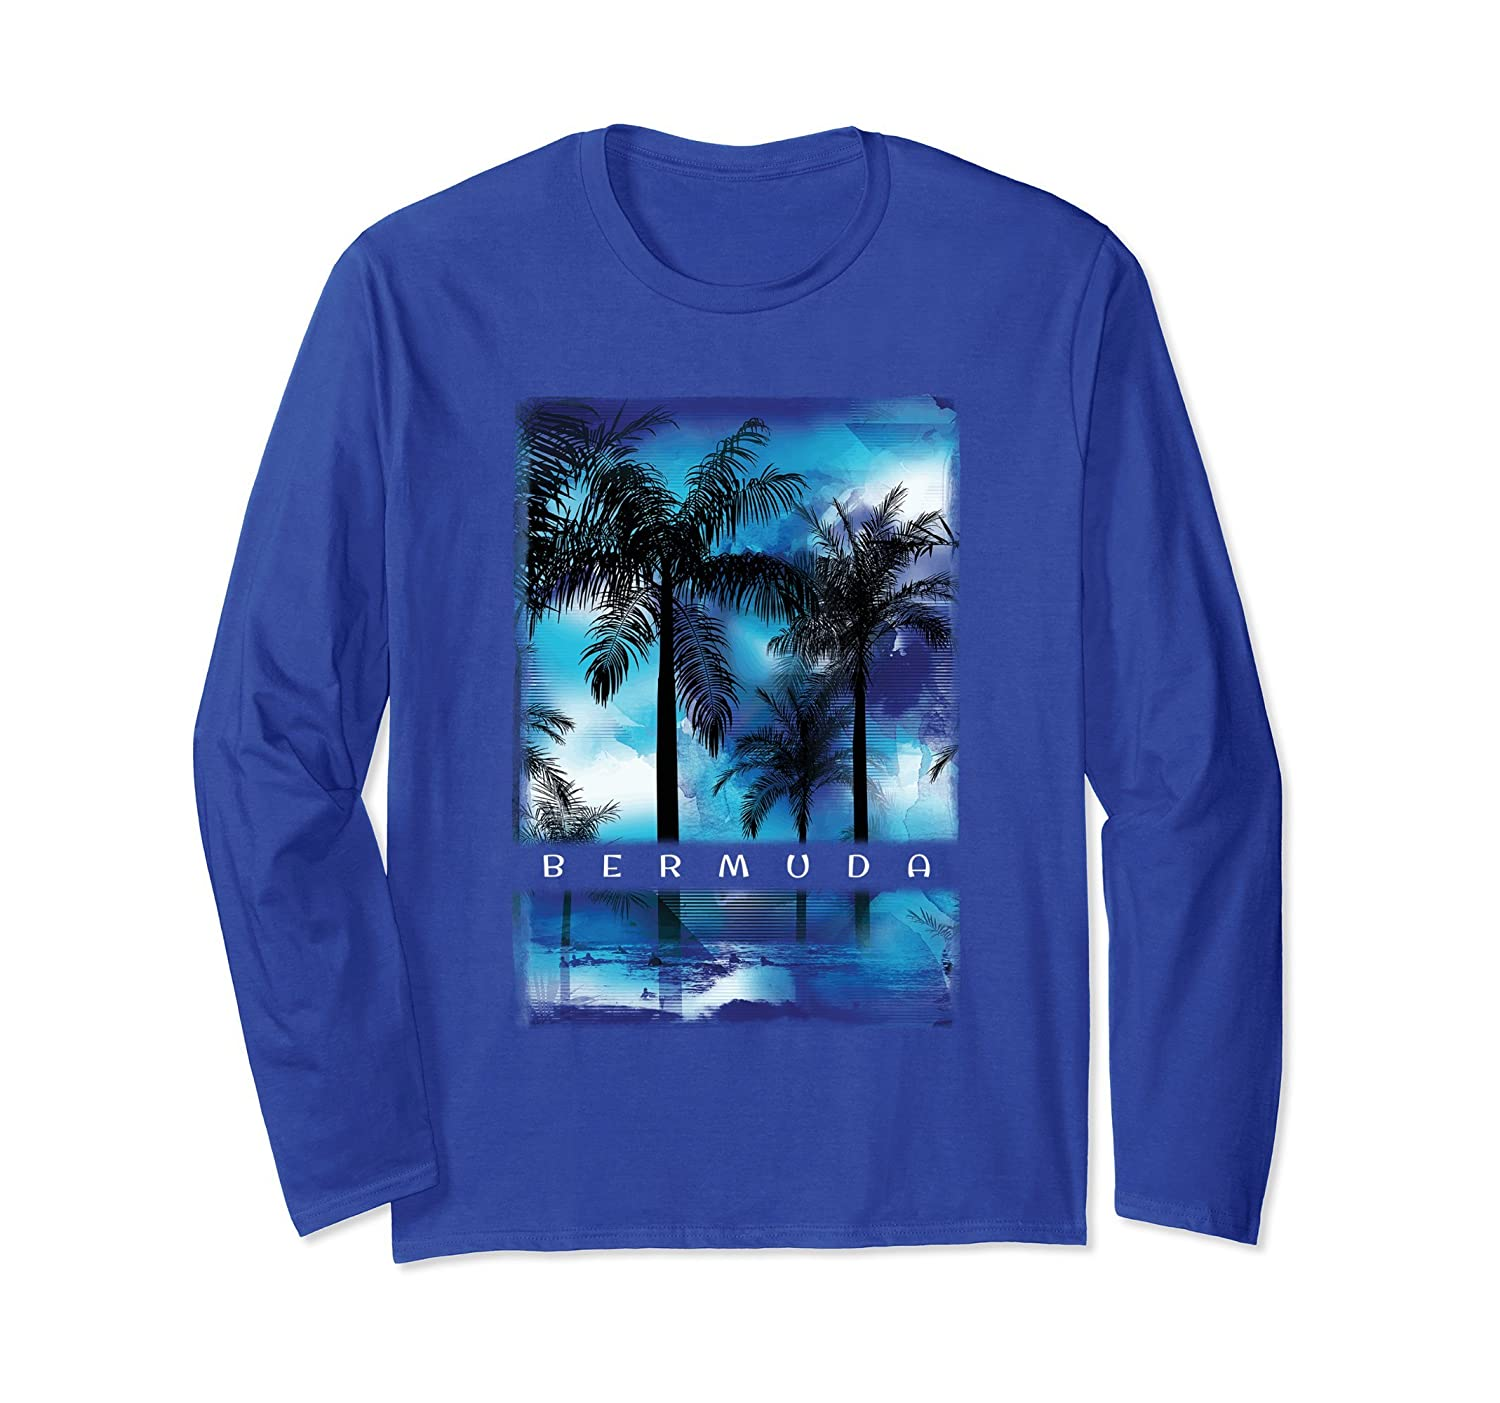 Bermuda Vacation T Shirt Family Beach Souvenir Apparel-alottee gift